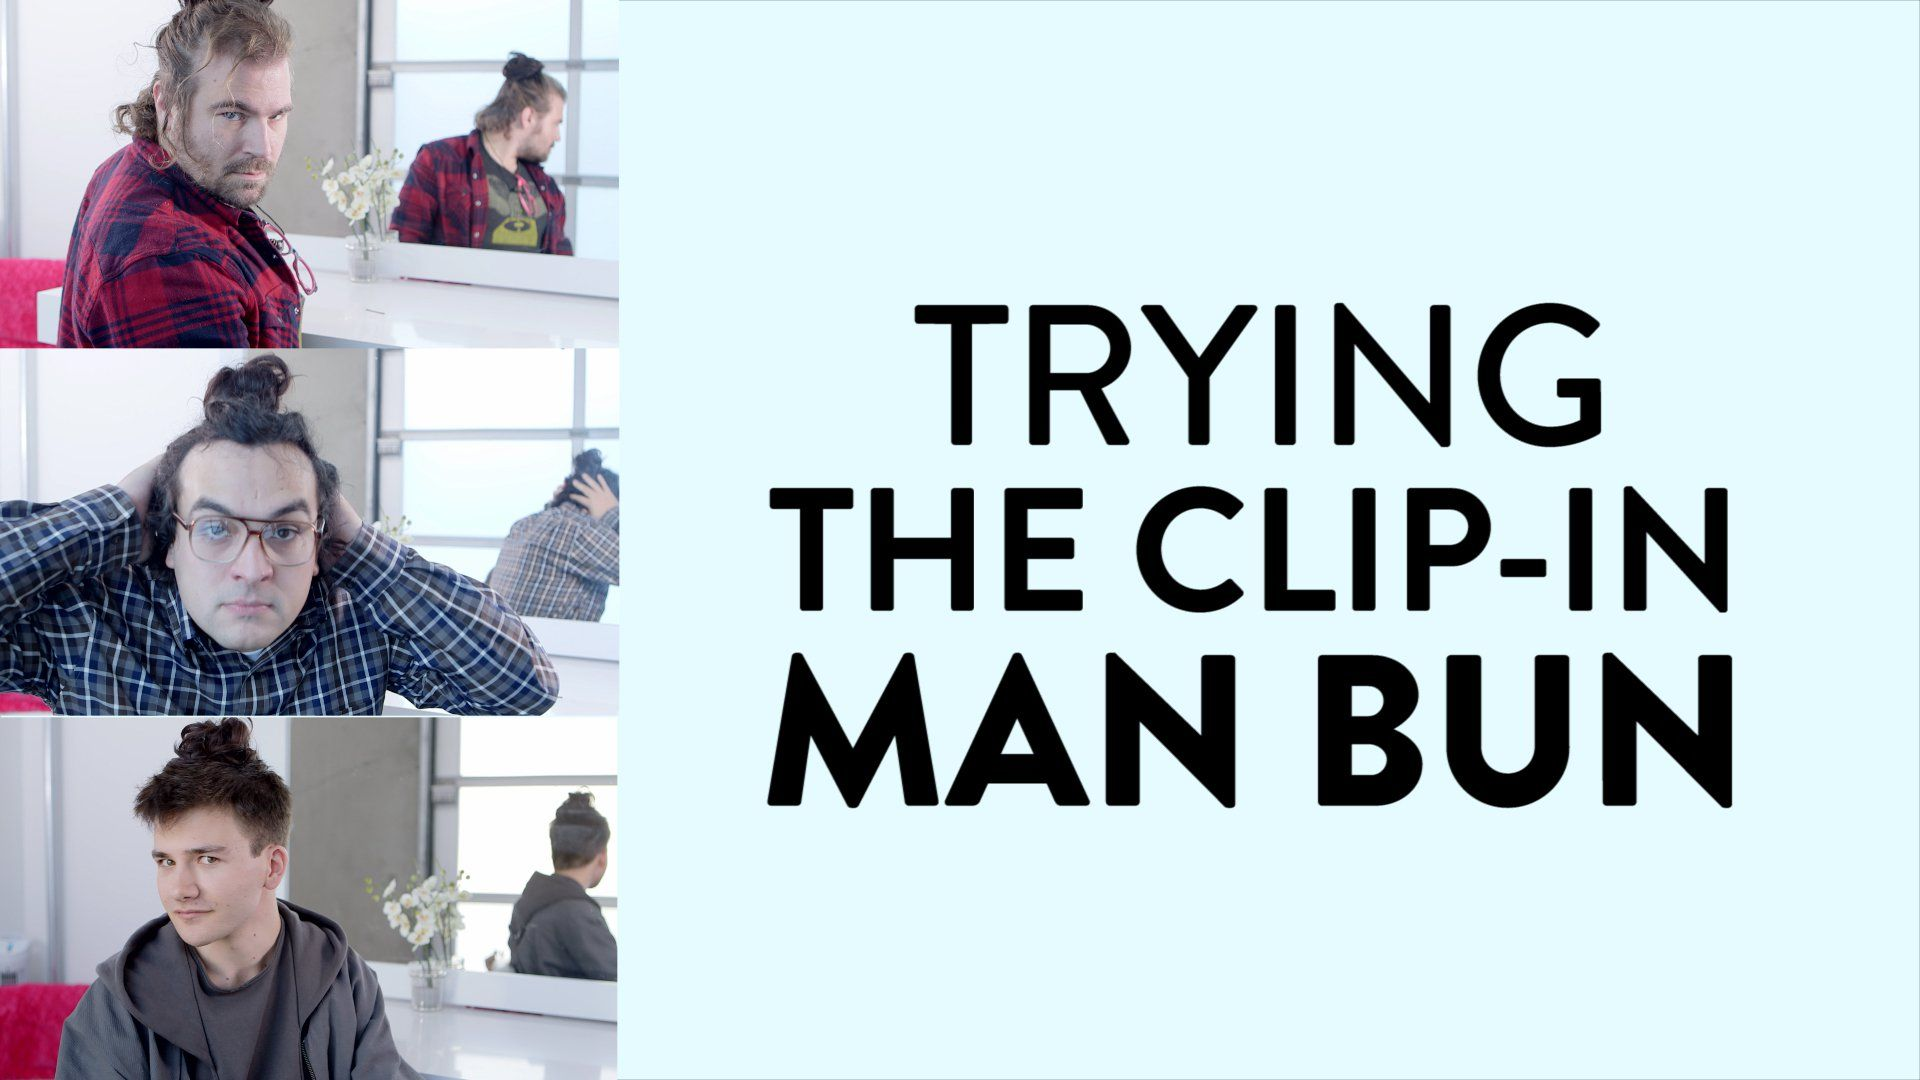 Funny Quotes About Haircuts: These Men Got Clip-In Man Buns, And The Results Are